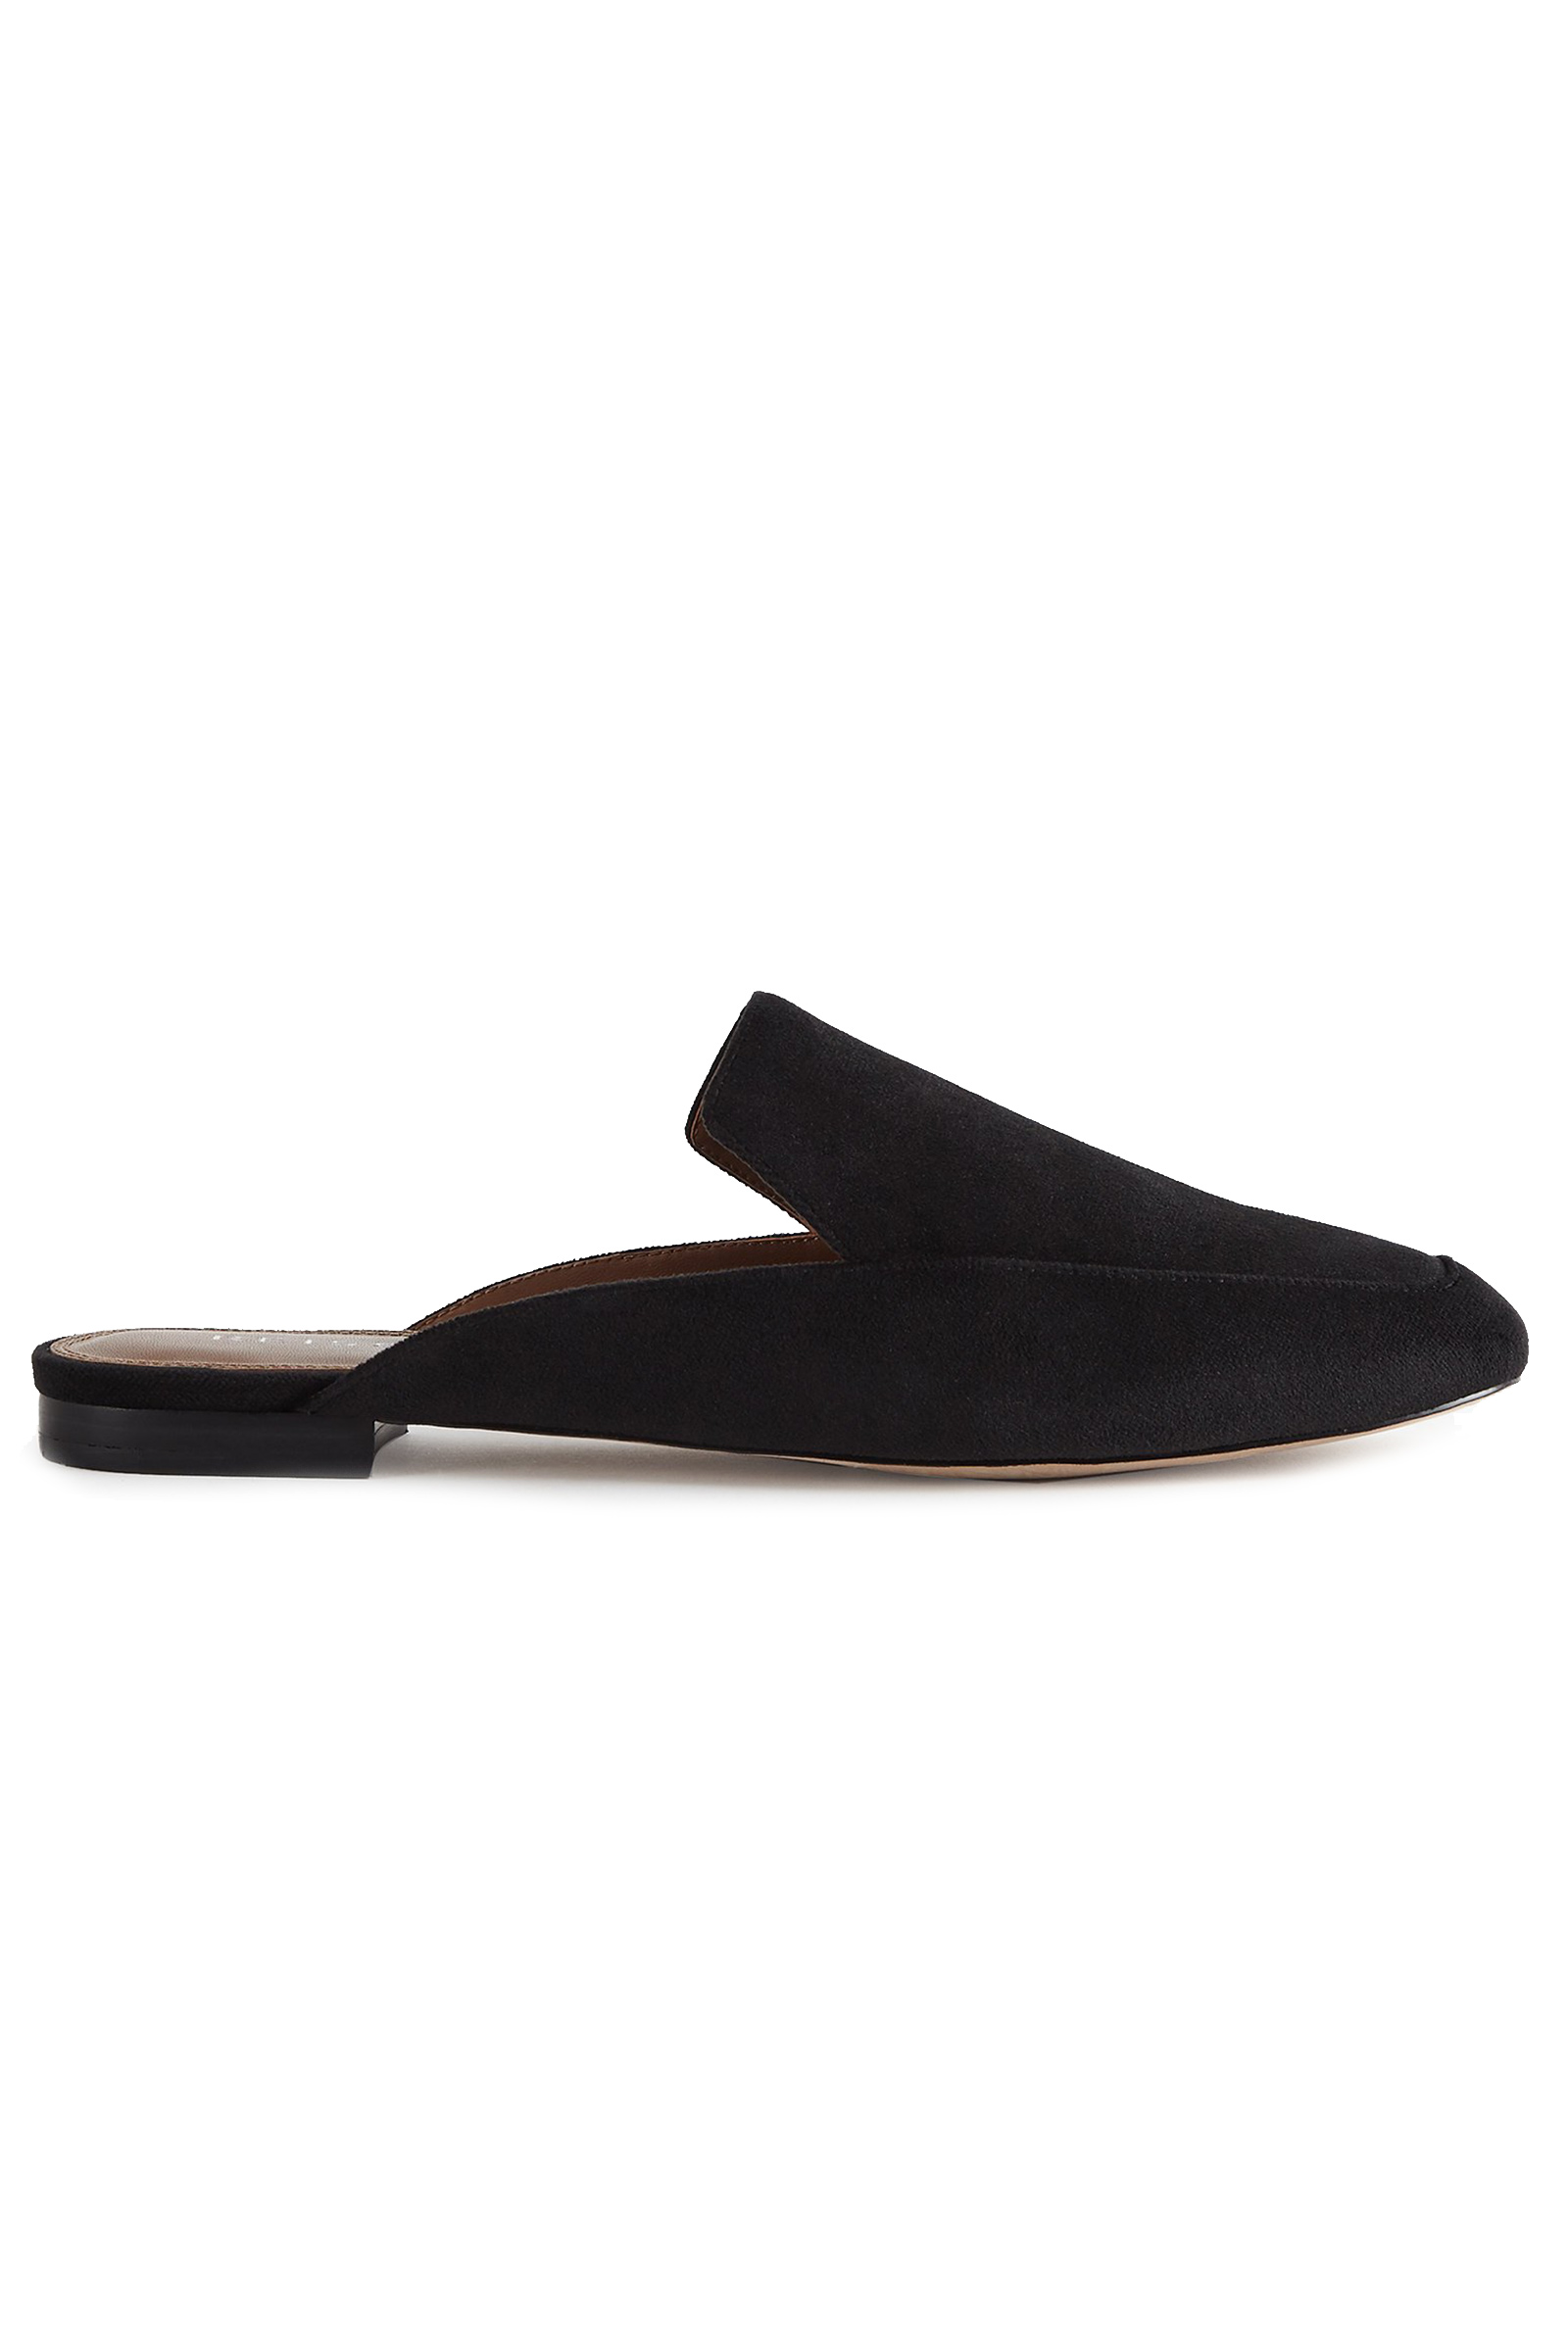 Click to Buy Reiss Loafers